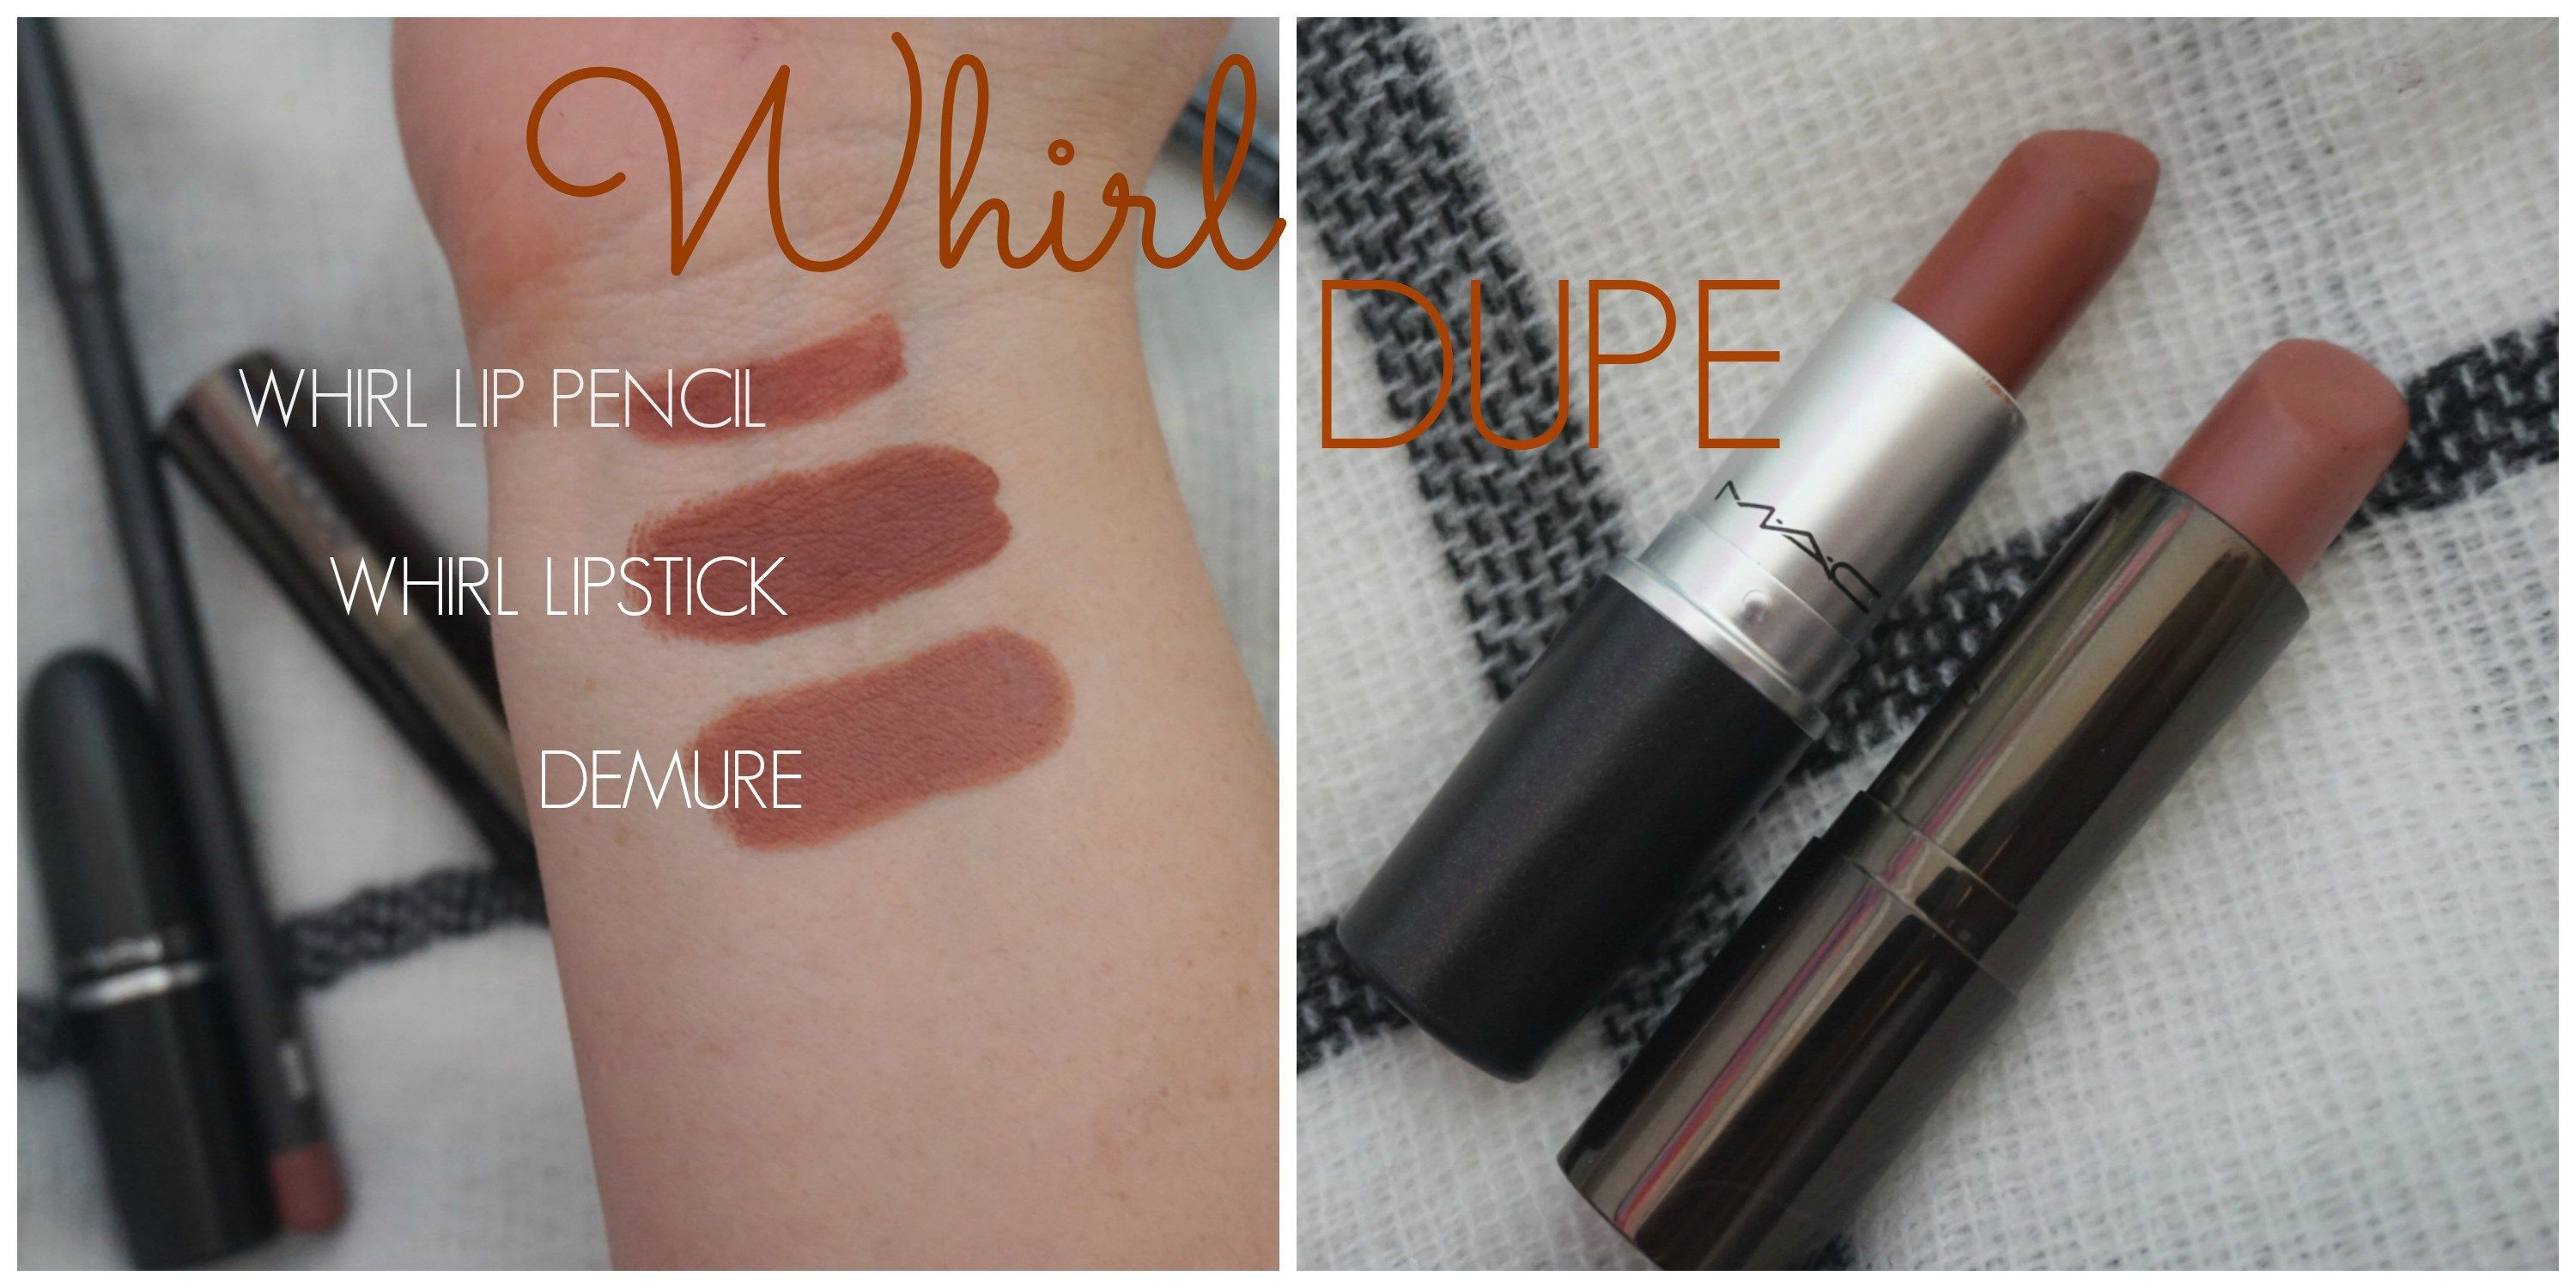 Amado Mac Whirl Dupe | sewing | Pinterest | Dupes and Matte lipsticks HA25